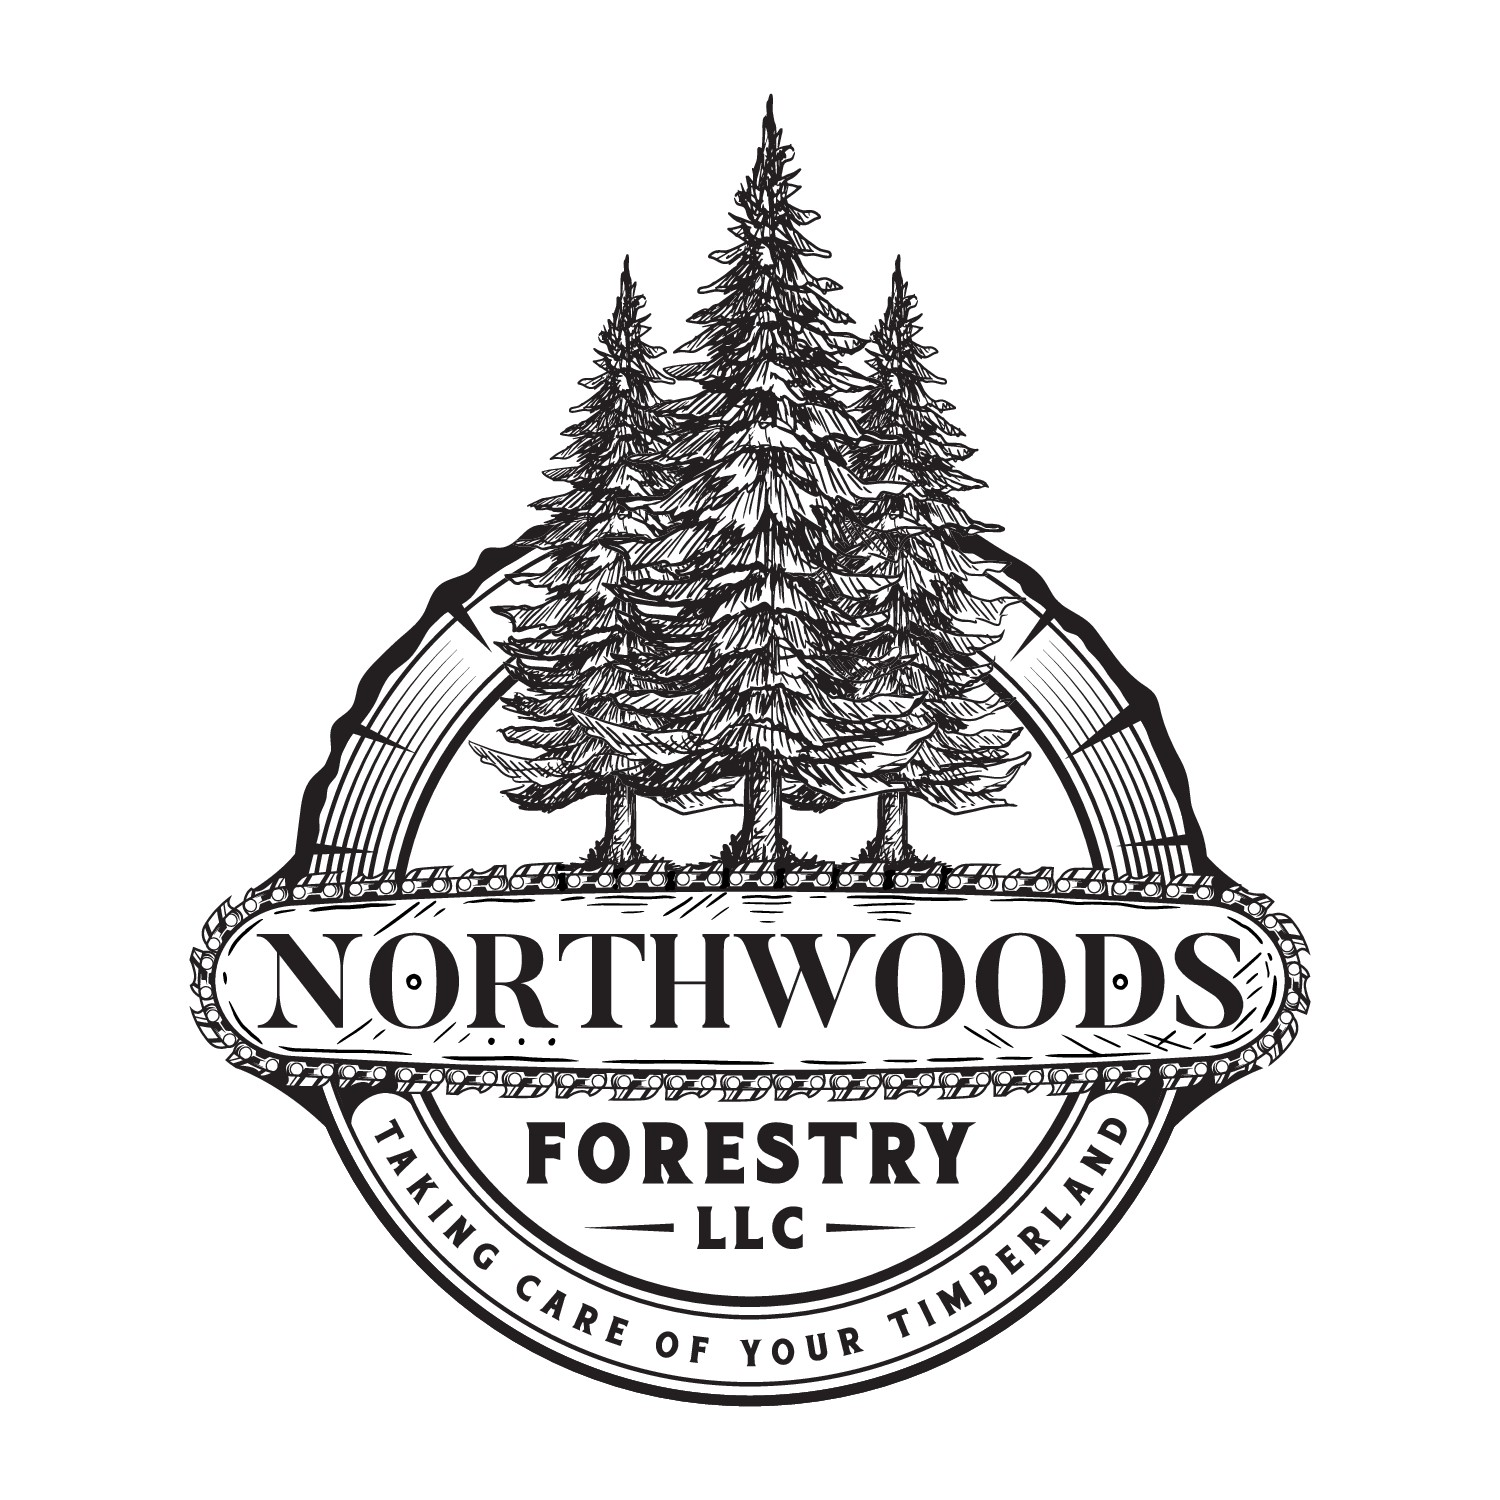 Northwoods Forestry wants to inspire, educated and inform.